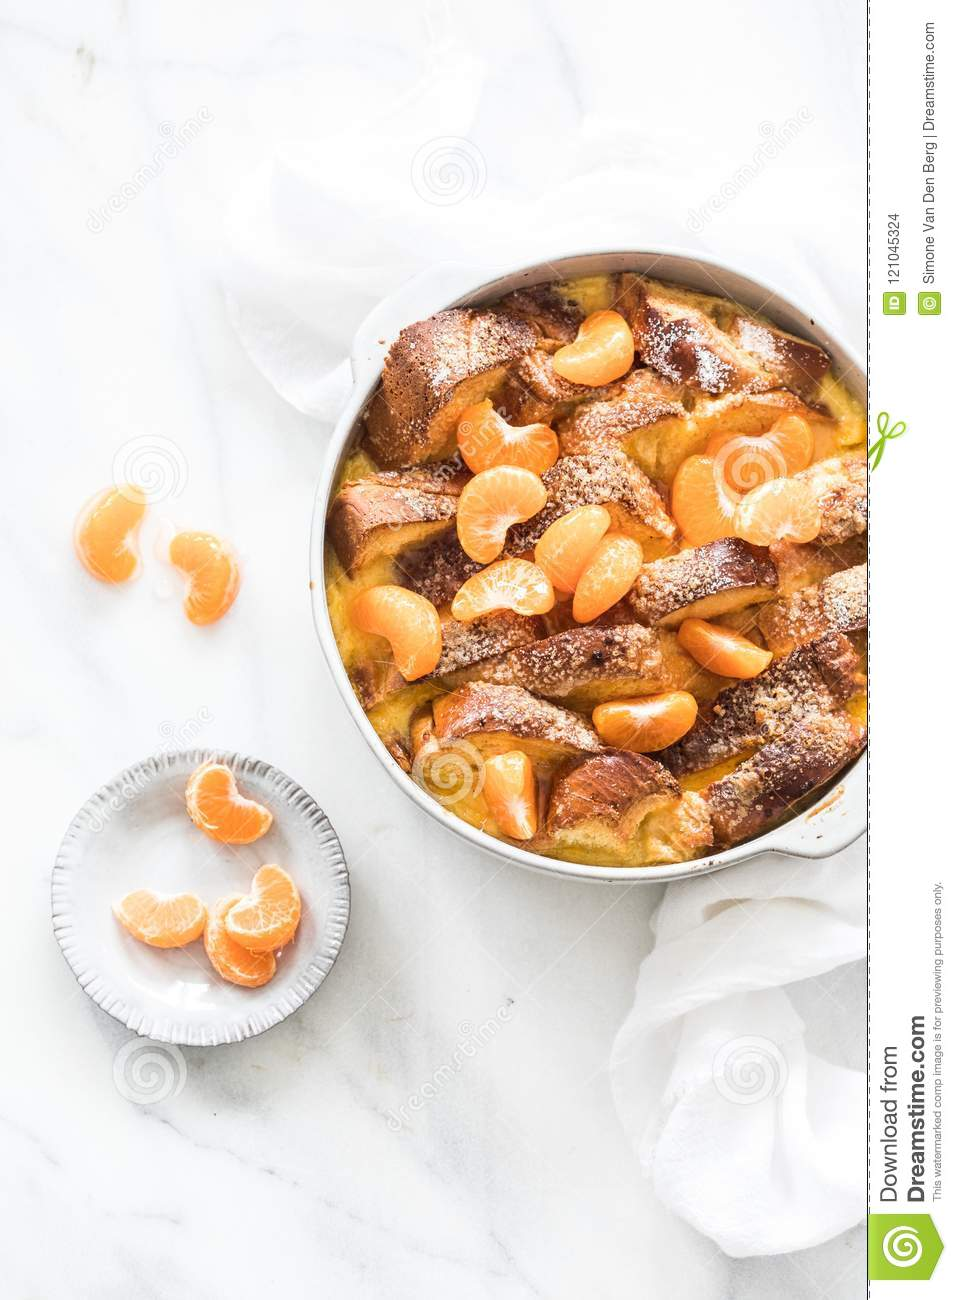 Bread Pudding With Mandarins Stock Photo Image Of Sweet Sweets